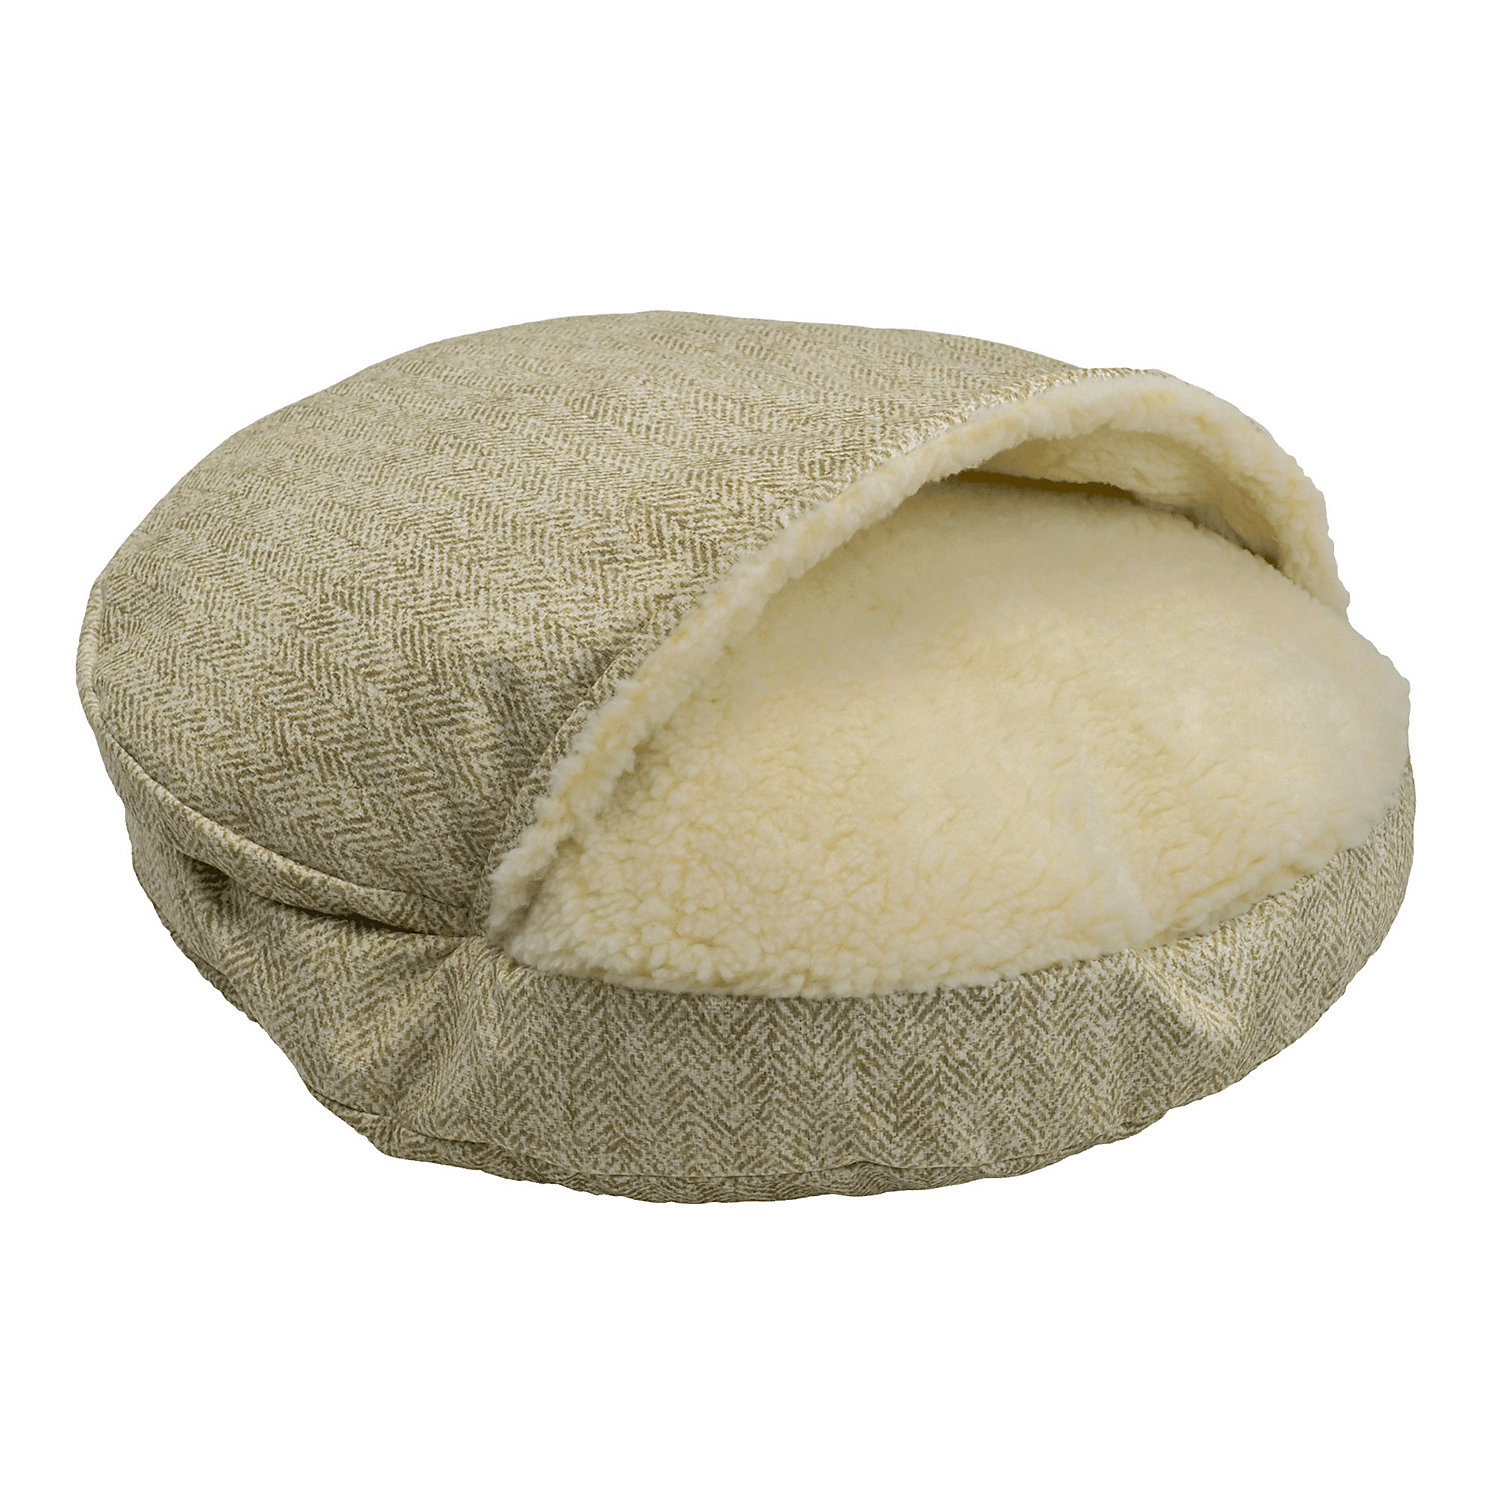 Snoozer Orthopedic Premium Micro Suede Cozy Cave Pet Bed in Palmer Citron 25 L x 25 W Small